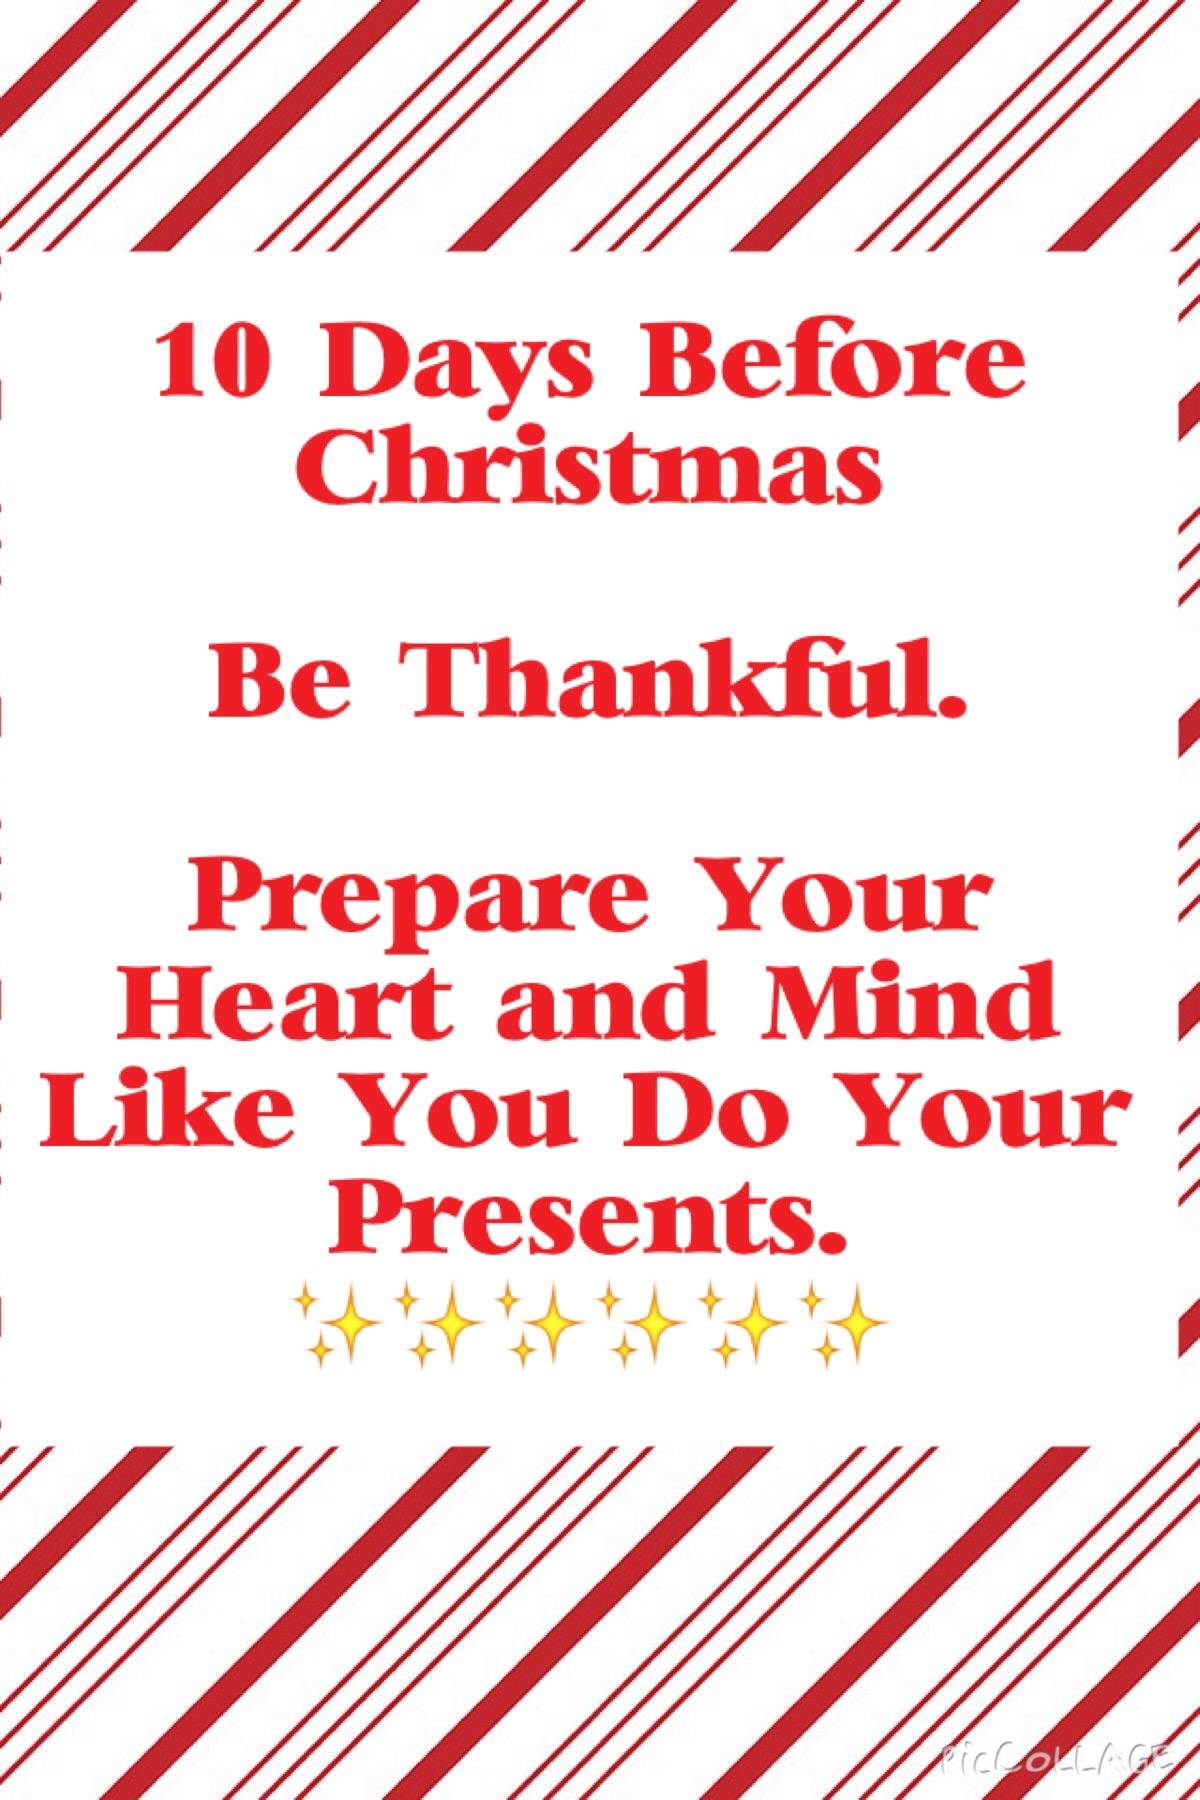 Until Christmas 10 Weeks Till Christmas.10 Days Until Christmas The Weekly Sparkle